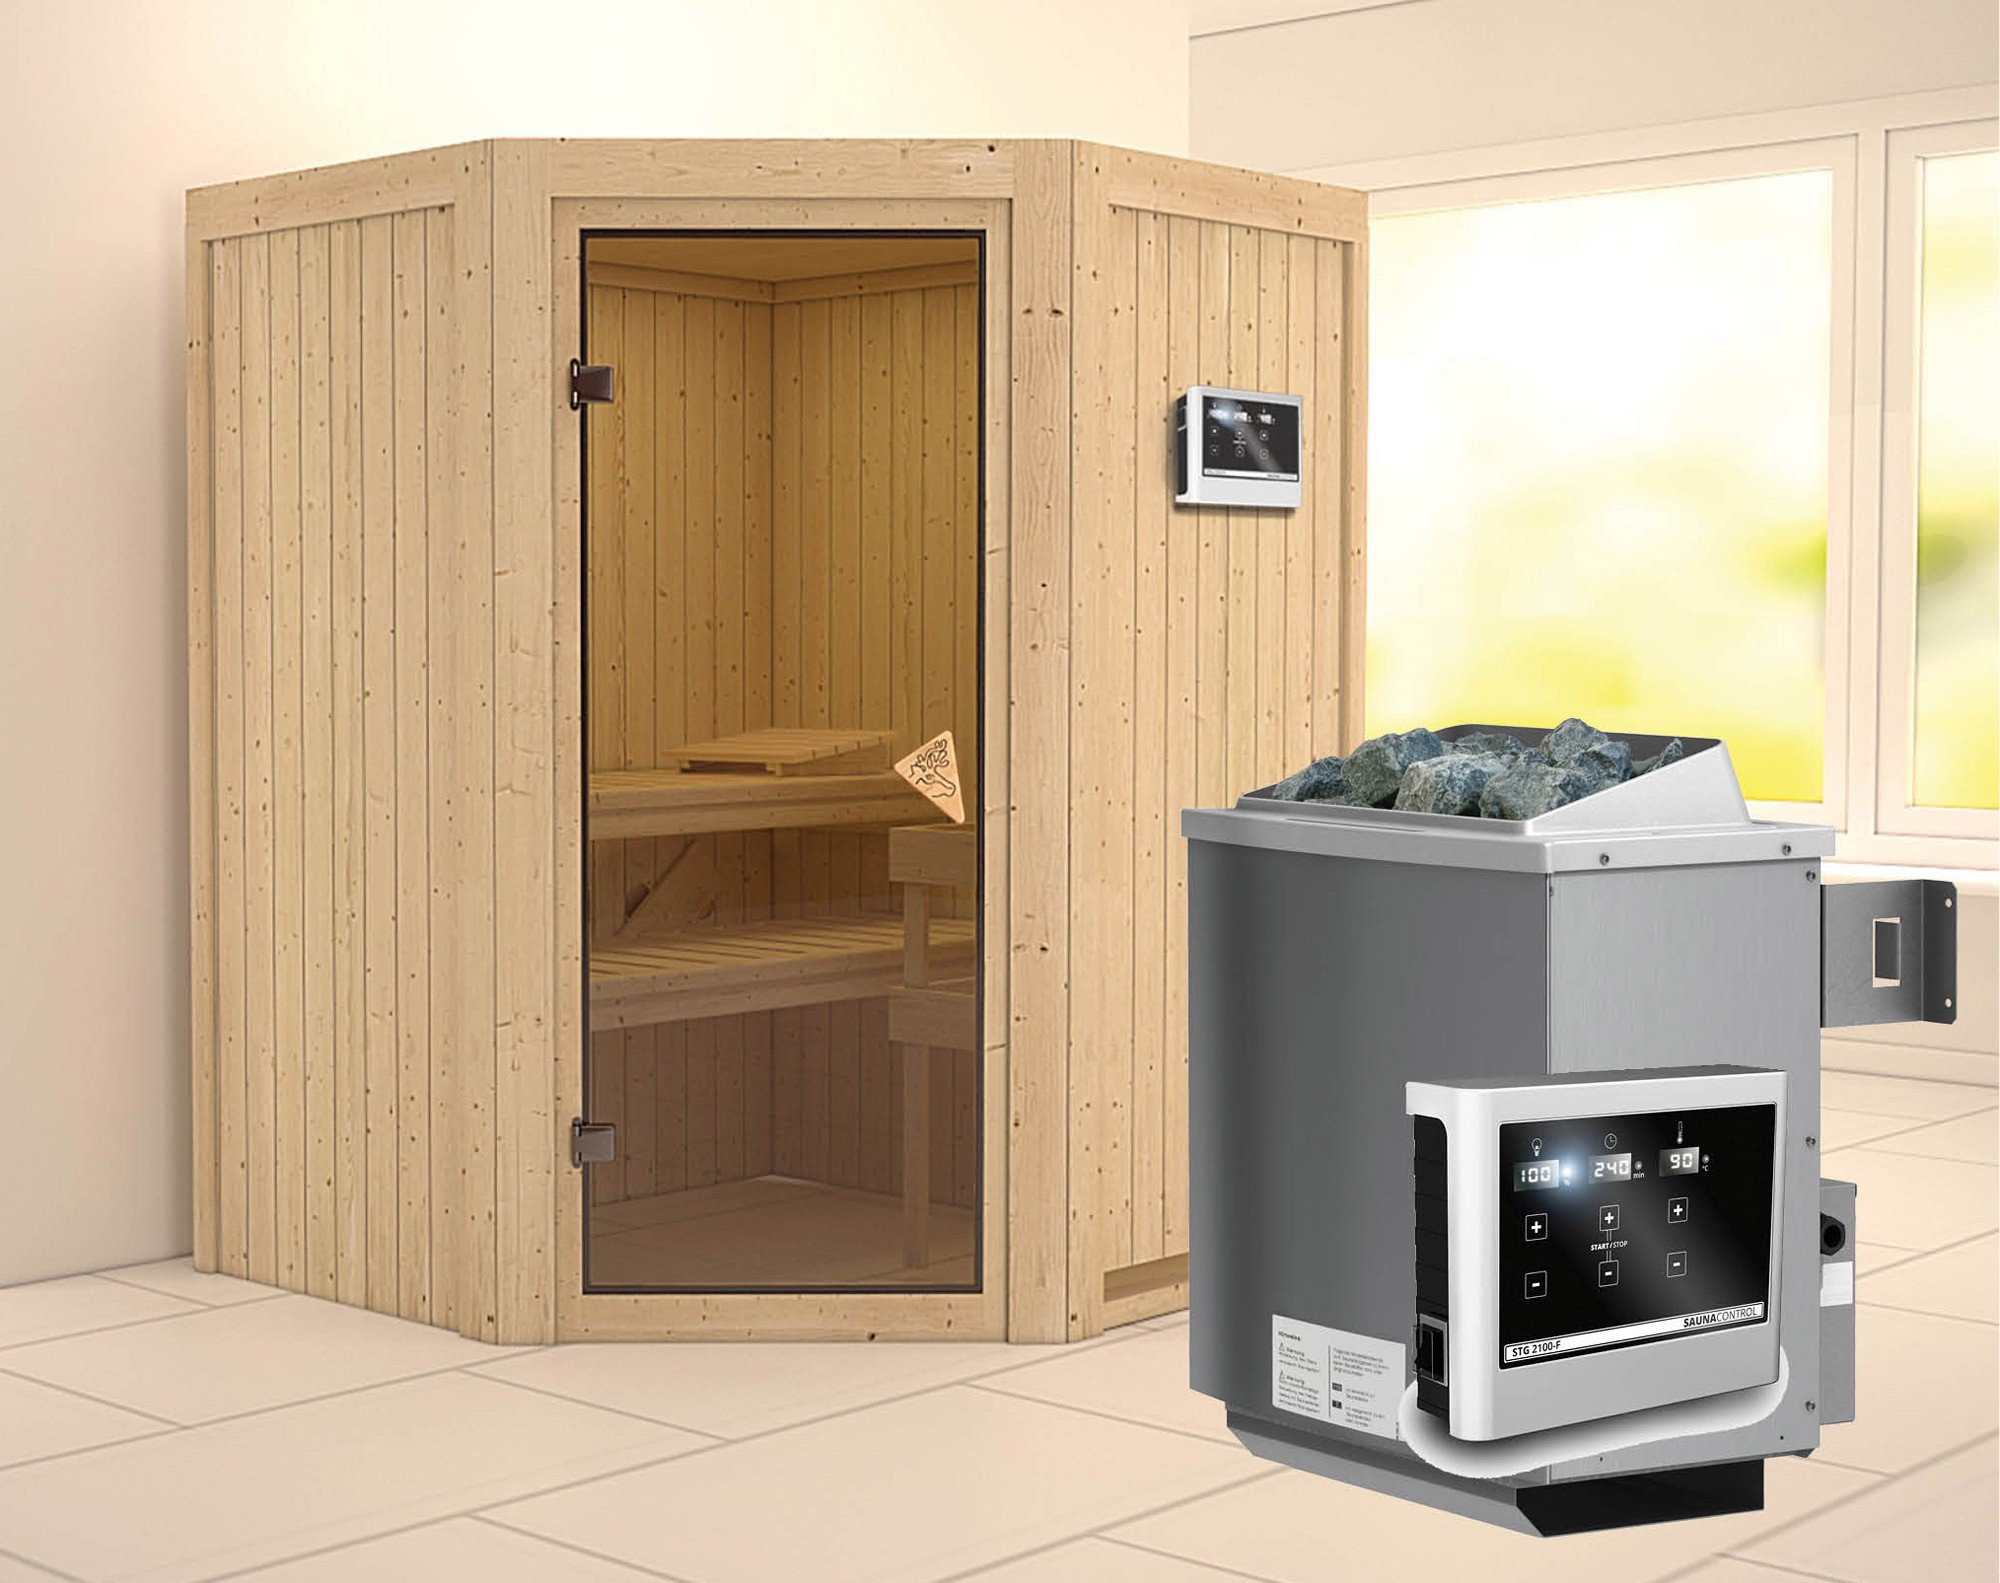 karibu sauna larin 68mm mit ofen 9kw extern classic t r bei. Black Bedroom Furniture Sets. Home Design Ideas